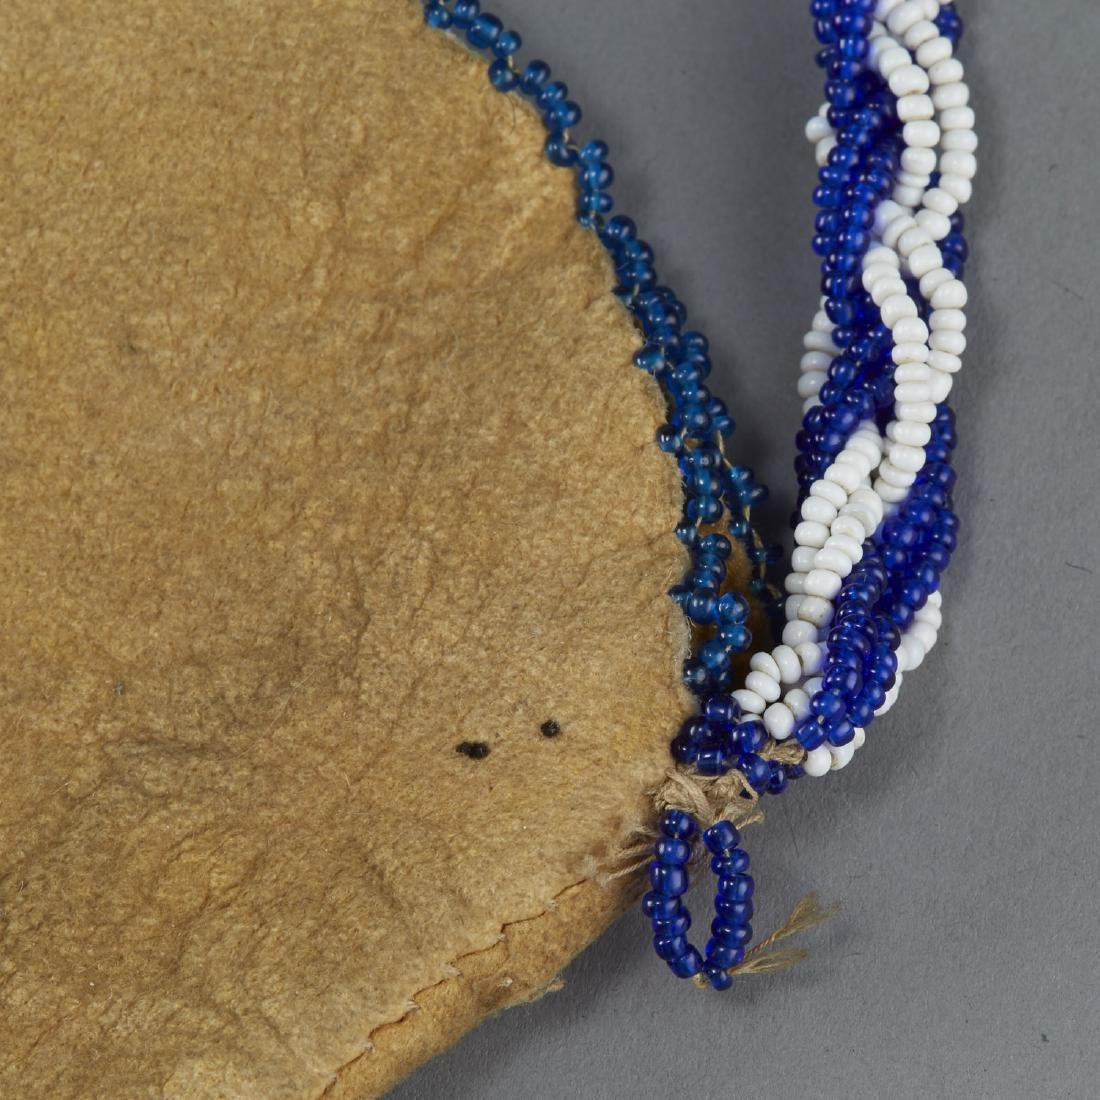 Group of 3 Native American Beaded Objects - 4